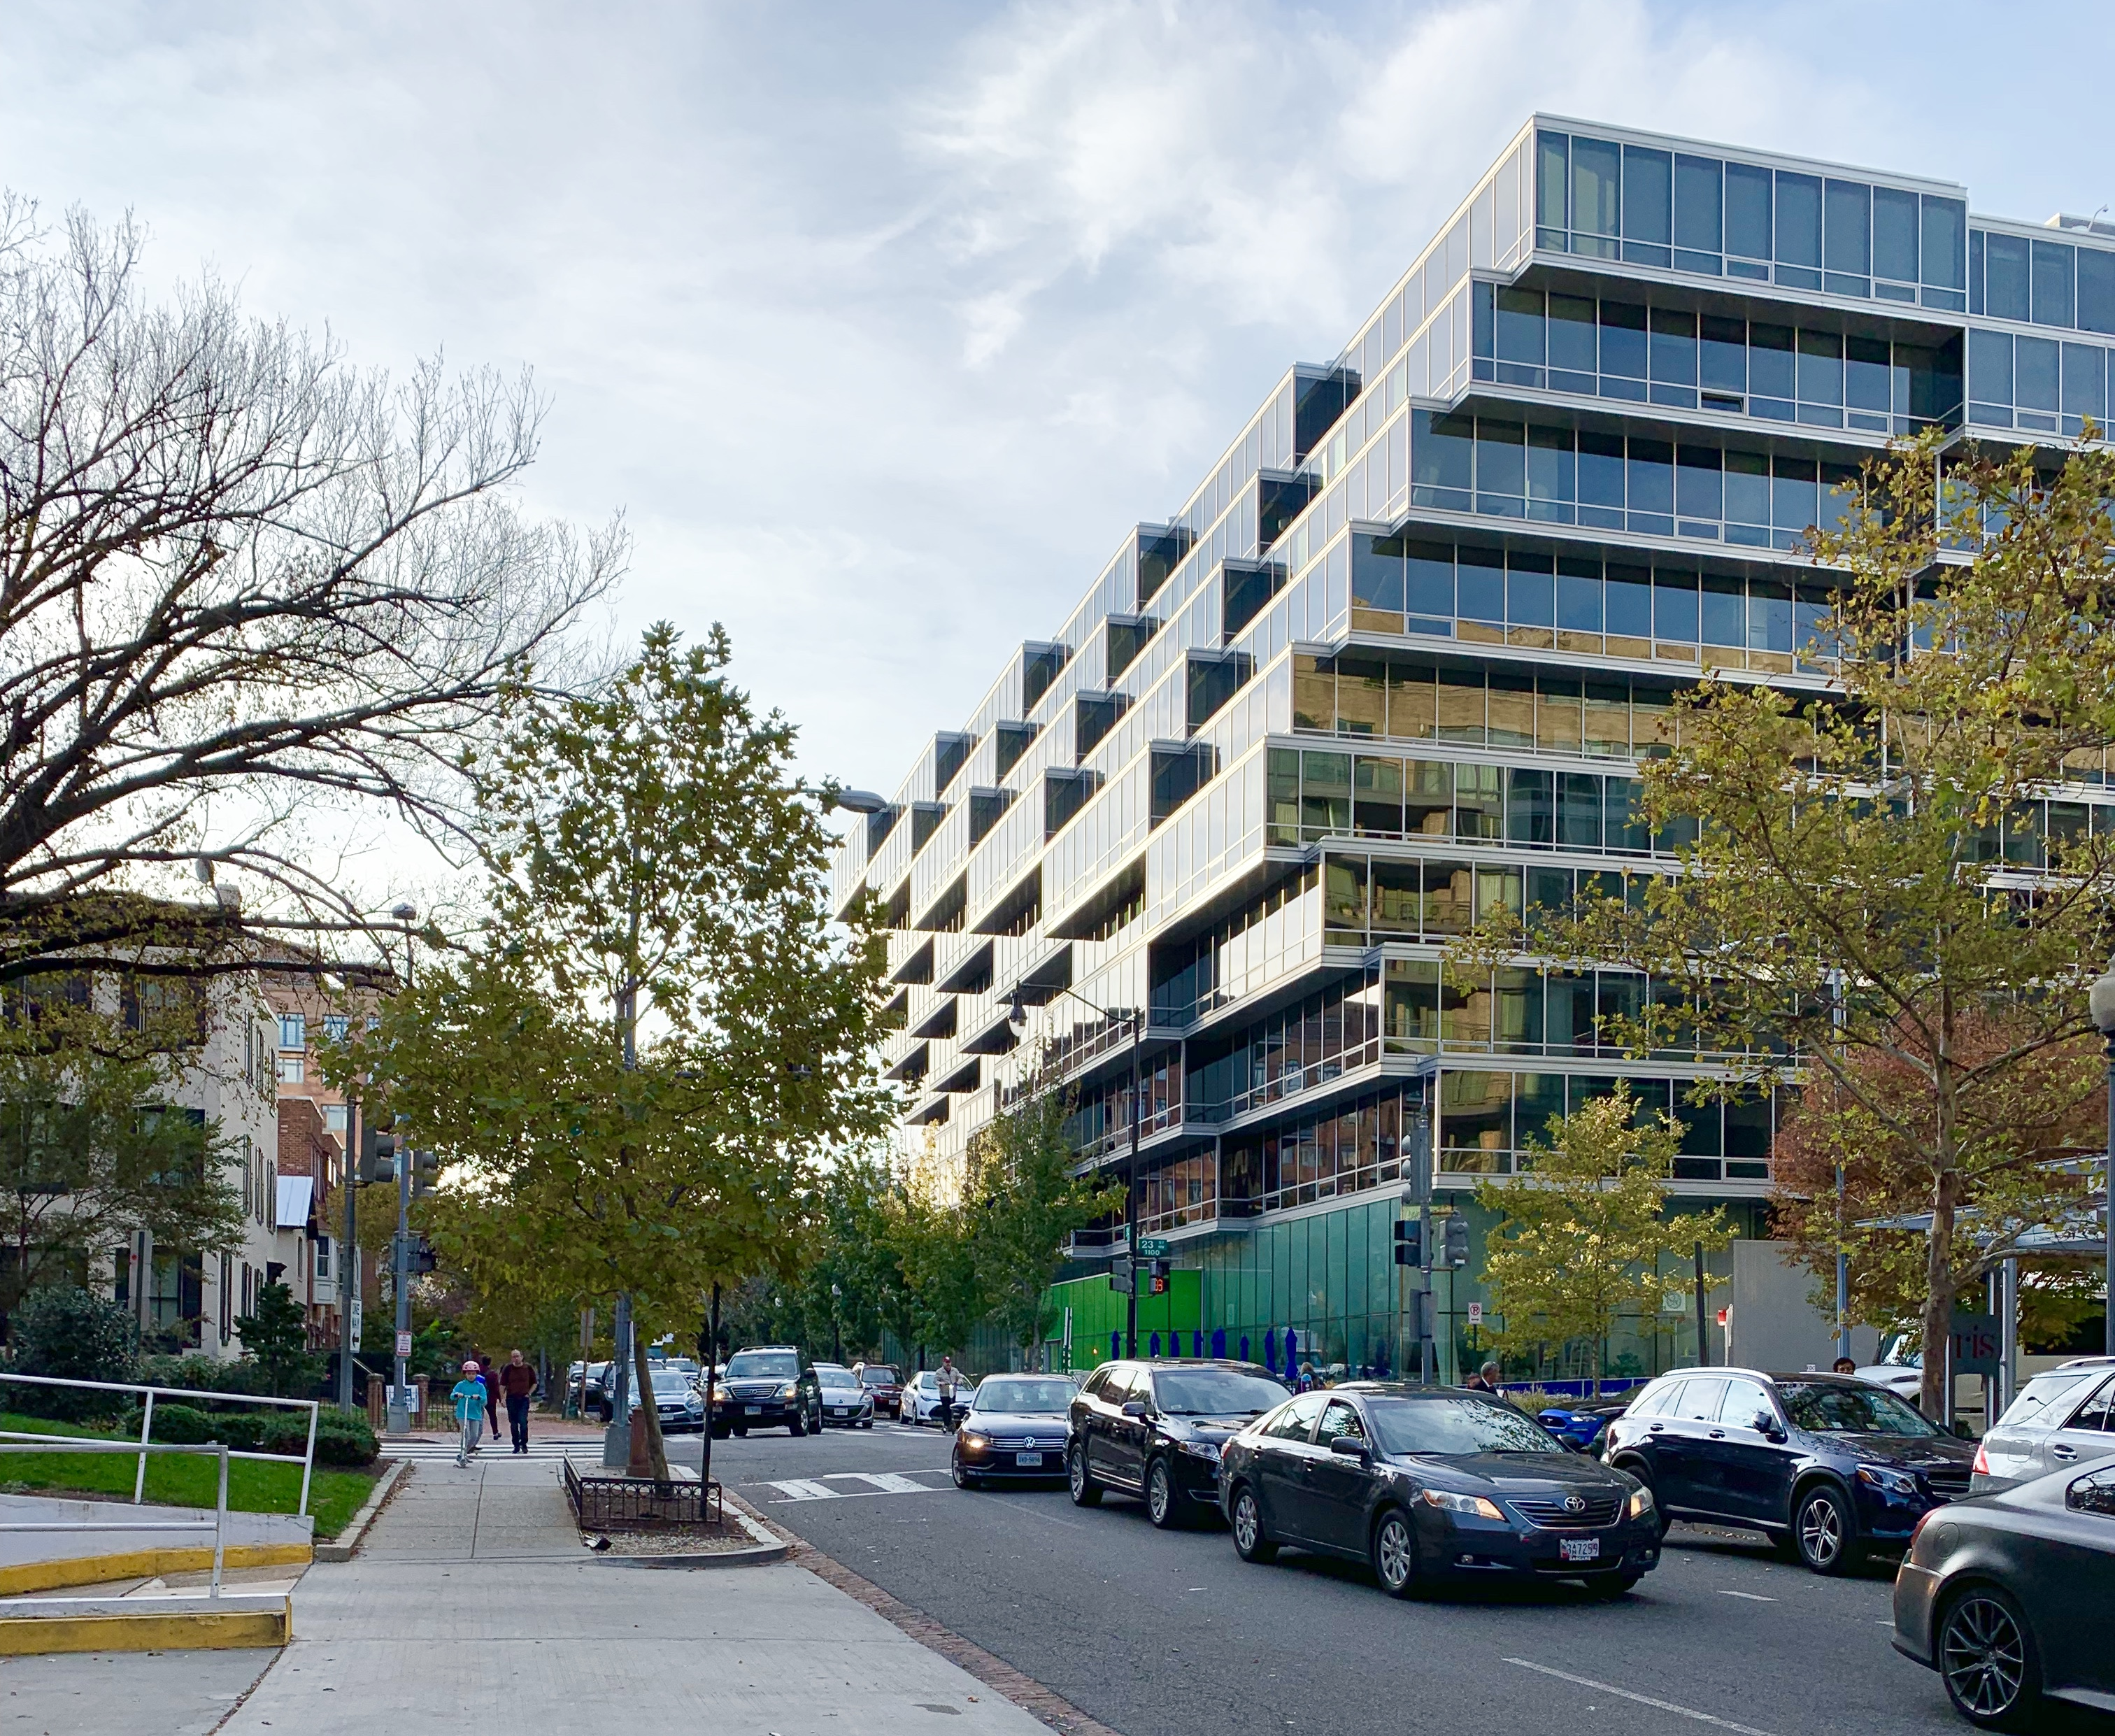 The Westlight in West End. New Construction Luxury Condos in Washington, DC